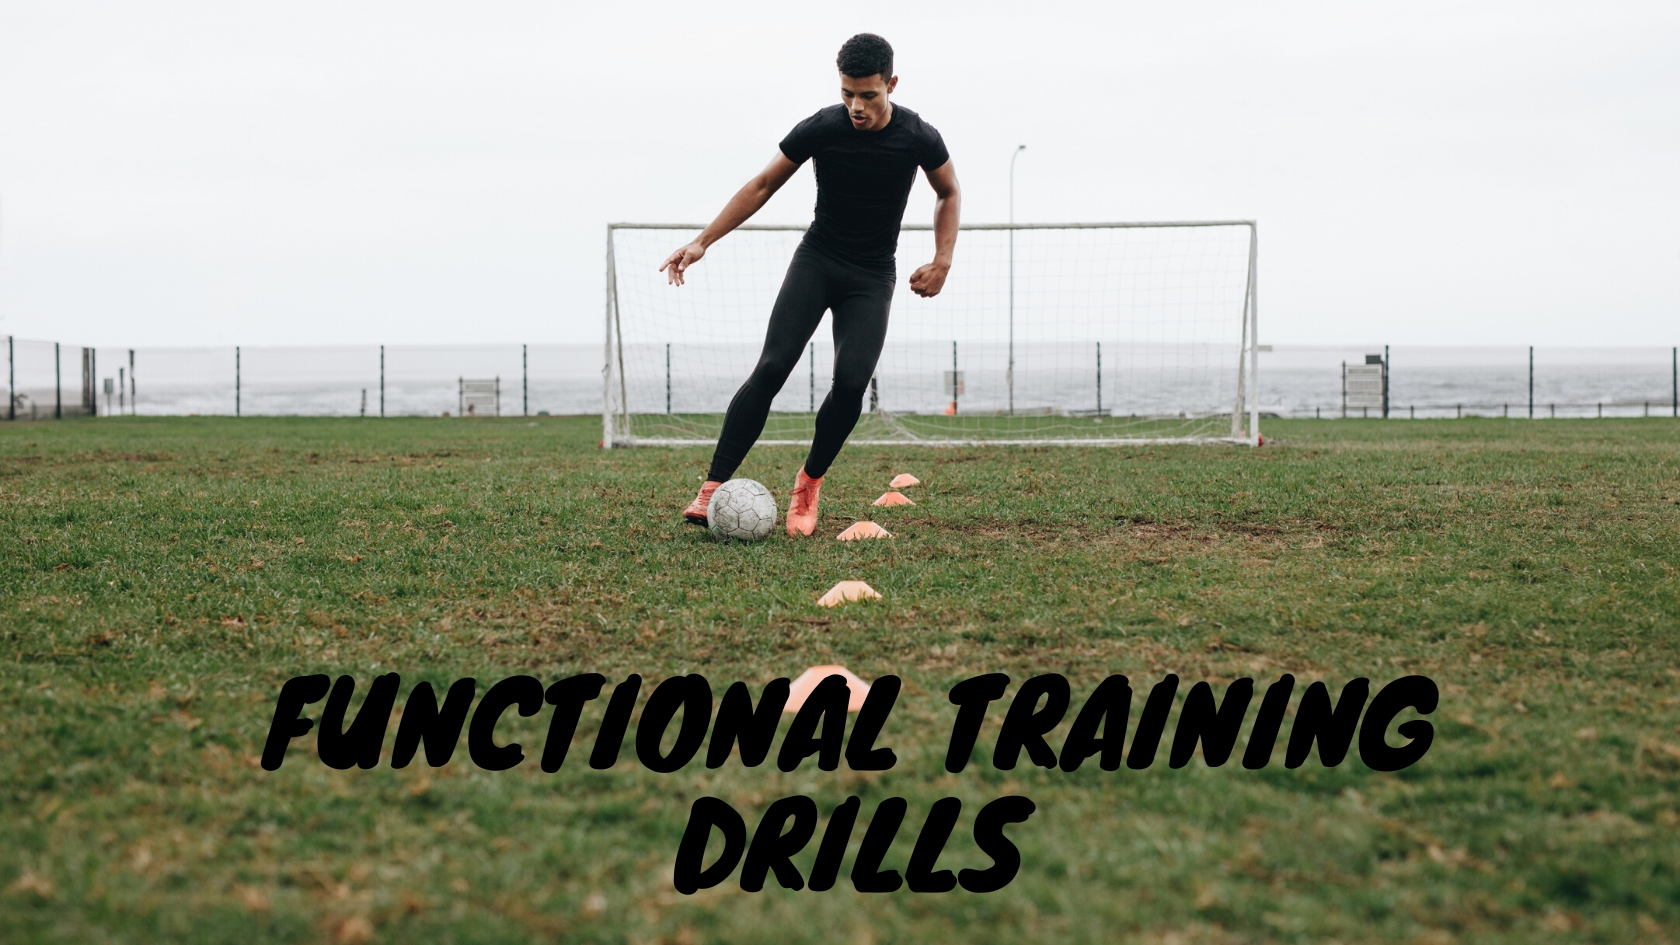 Functional Training Drills